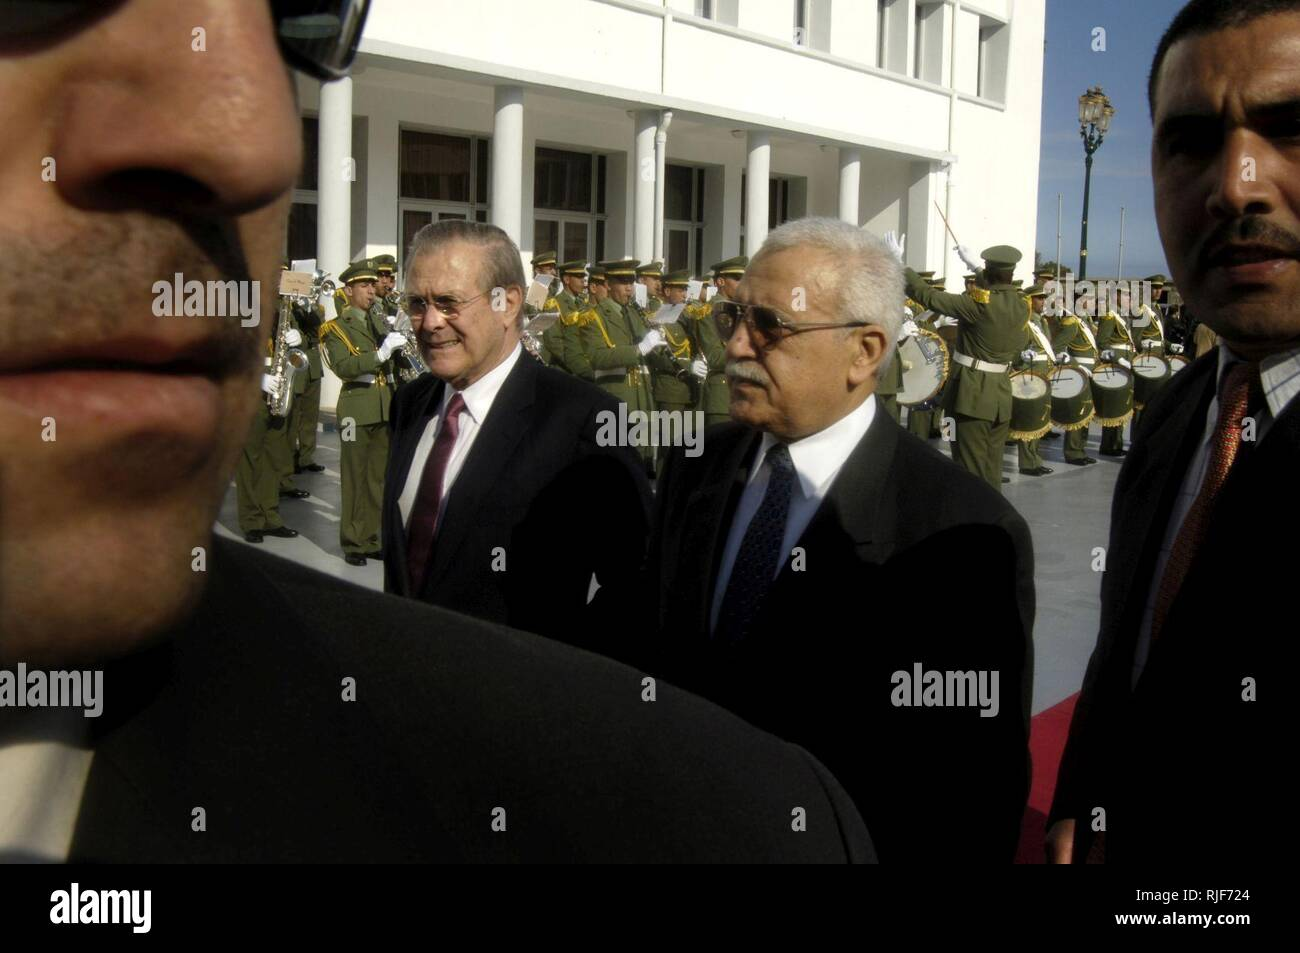 Algerian Minister of Defense Abdelmalek Guenaizia (2nd from right) welcomes Secretary of Defense Donald H. Rumsfeld with full military honors in Algiers, Algeria on Feb. 12, 2006.  Rumsfeld met with delegations from the Mediterranean Dialogue countries of Algeria, Egypt, Israel, Jordan, Mauritania, Morocco and Tunisia earlier at the NATO Ministerial in Taormina, Sicily.  Rumsfeld will meet with Guenaizia and other senior leaders in Algiers to continue those talks and discuss regional security issues. - Stock Image